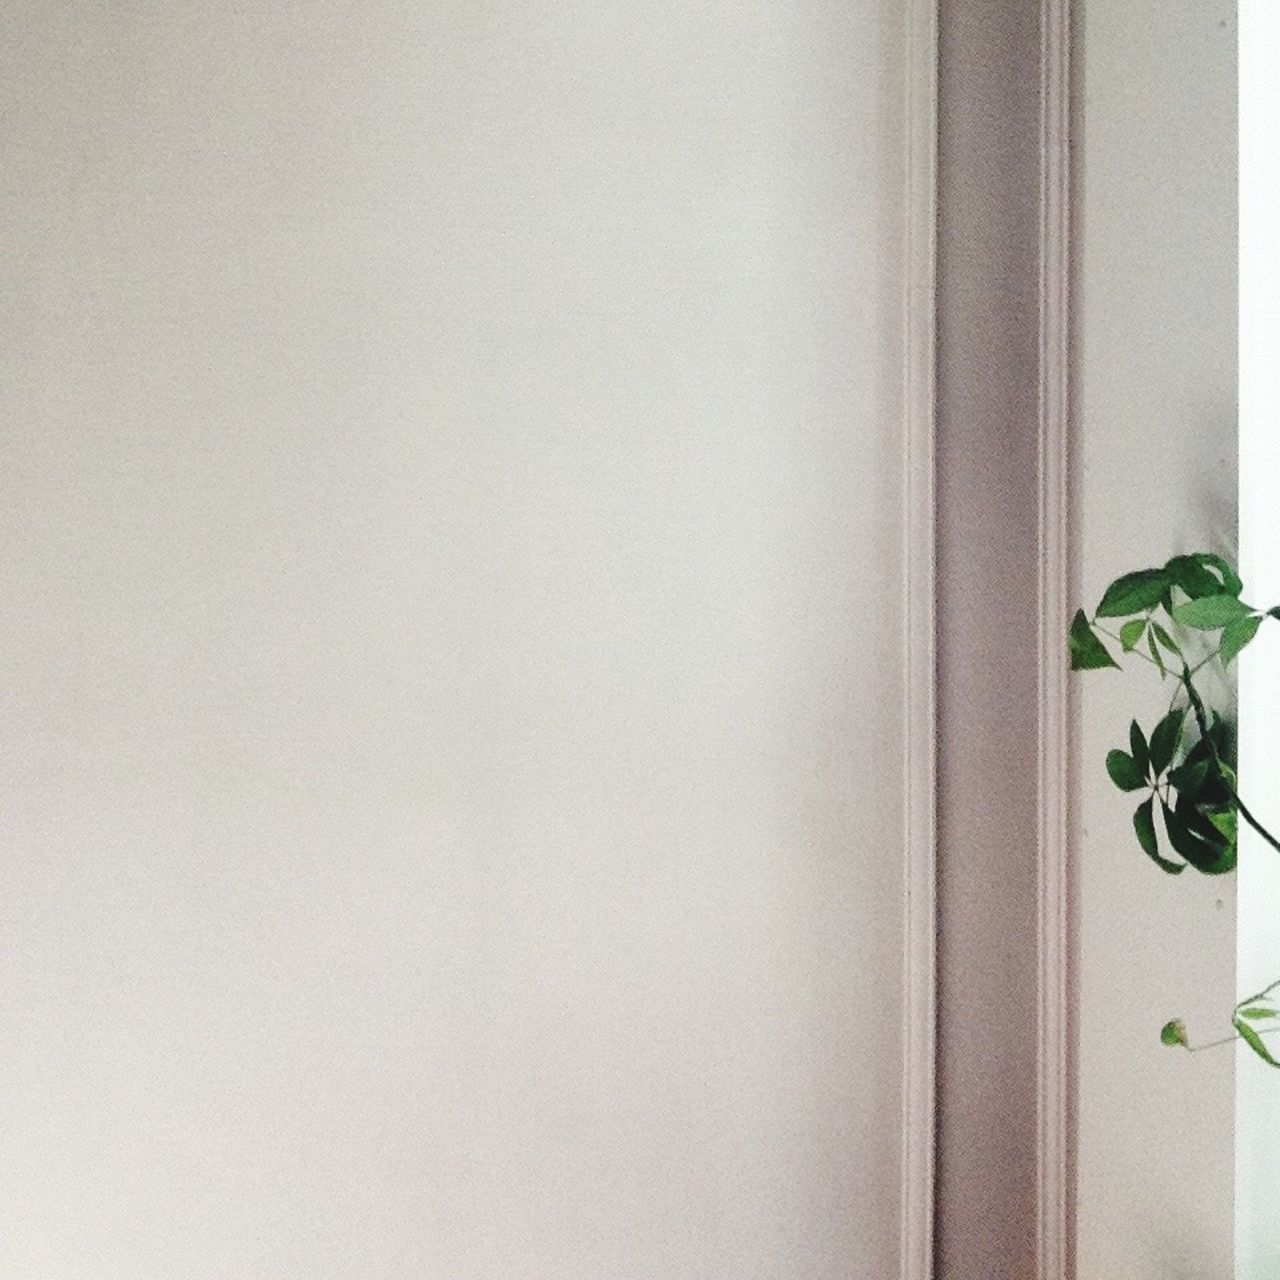 I don't know why, but I love this pic Green Plant Small Detail Empty Space